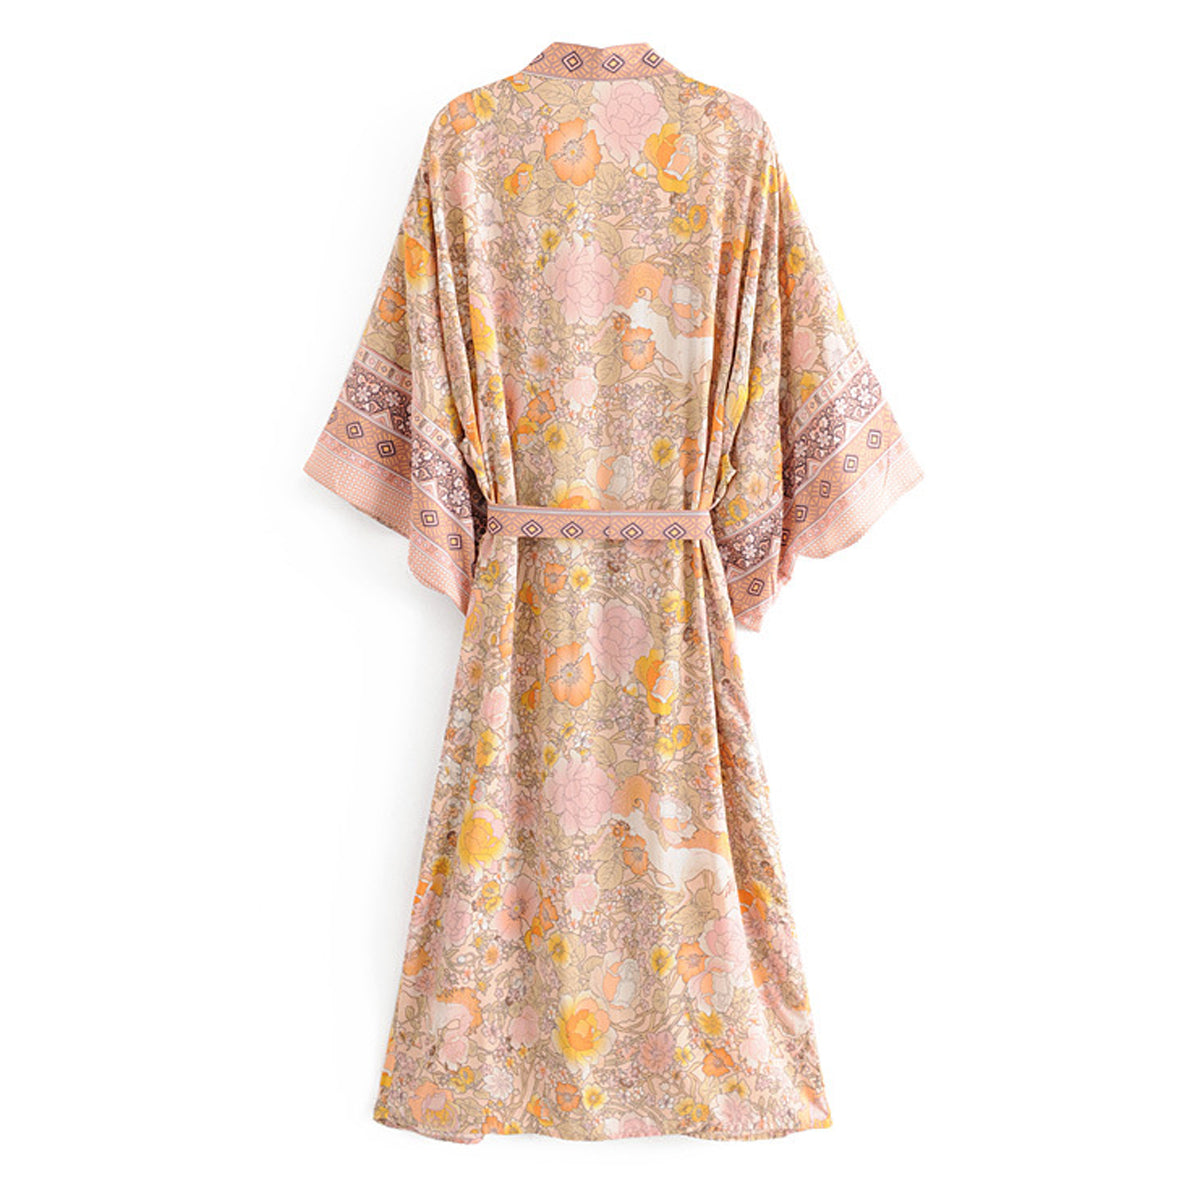 Jastie Floral Print Robe Femme Summer Long Cardigan Jacket Women Shirt Vintage Kimono Cardigans Loose Boho Casual Beach Top